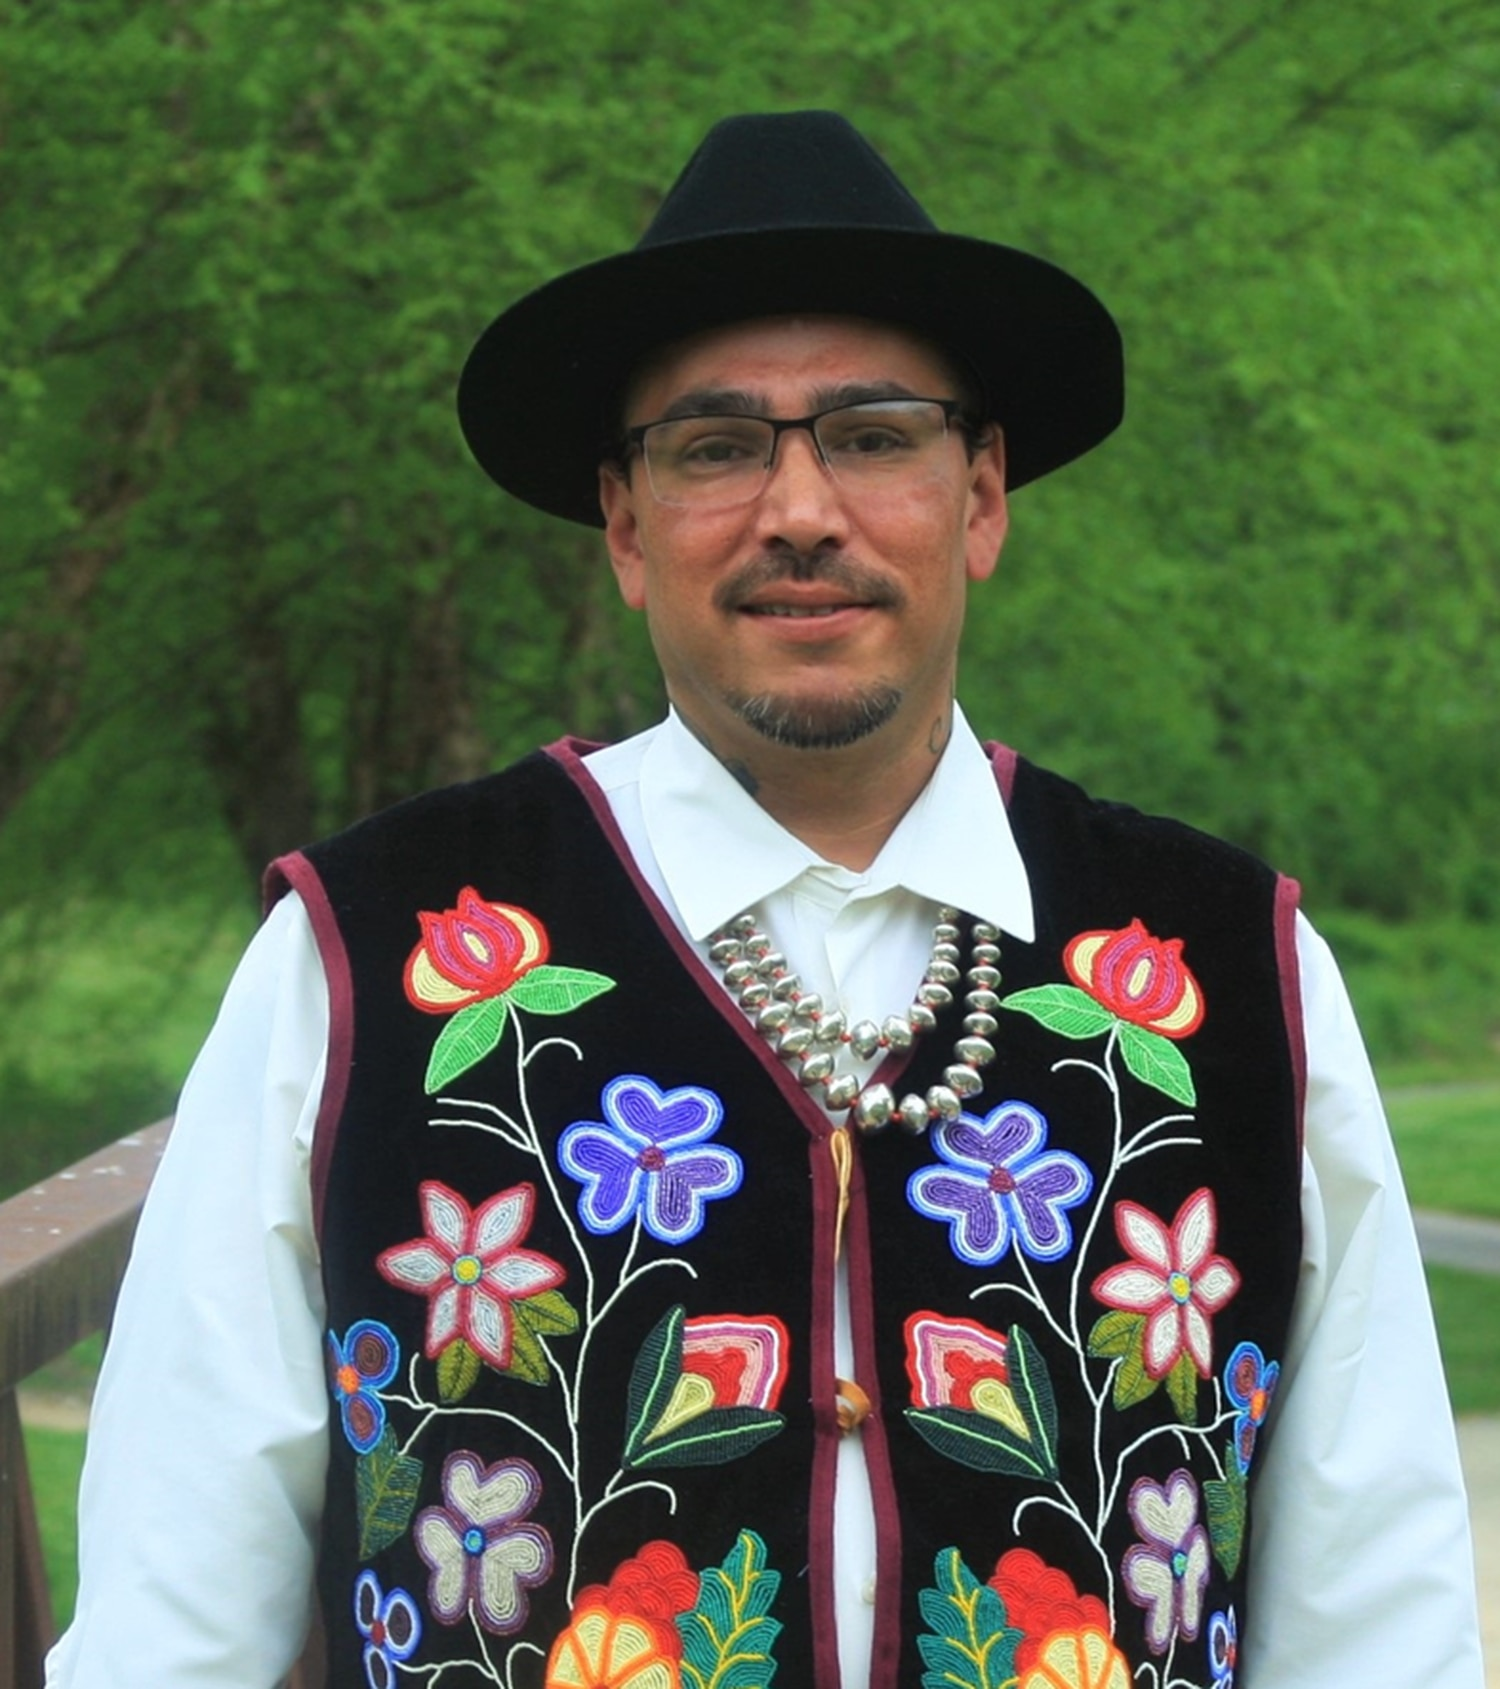 """Menominee Indian craftsman Dana Warrington says he'll be """"more than happy"""" to talk about his art with anyone interested, both at Good Folk gallery and the Indian Market."""